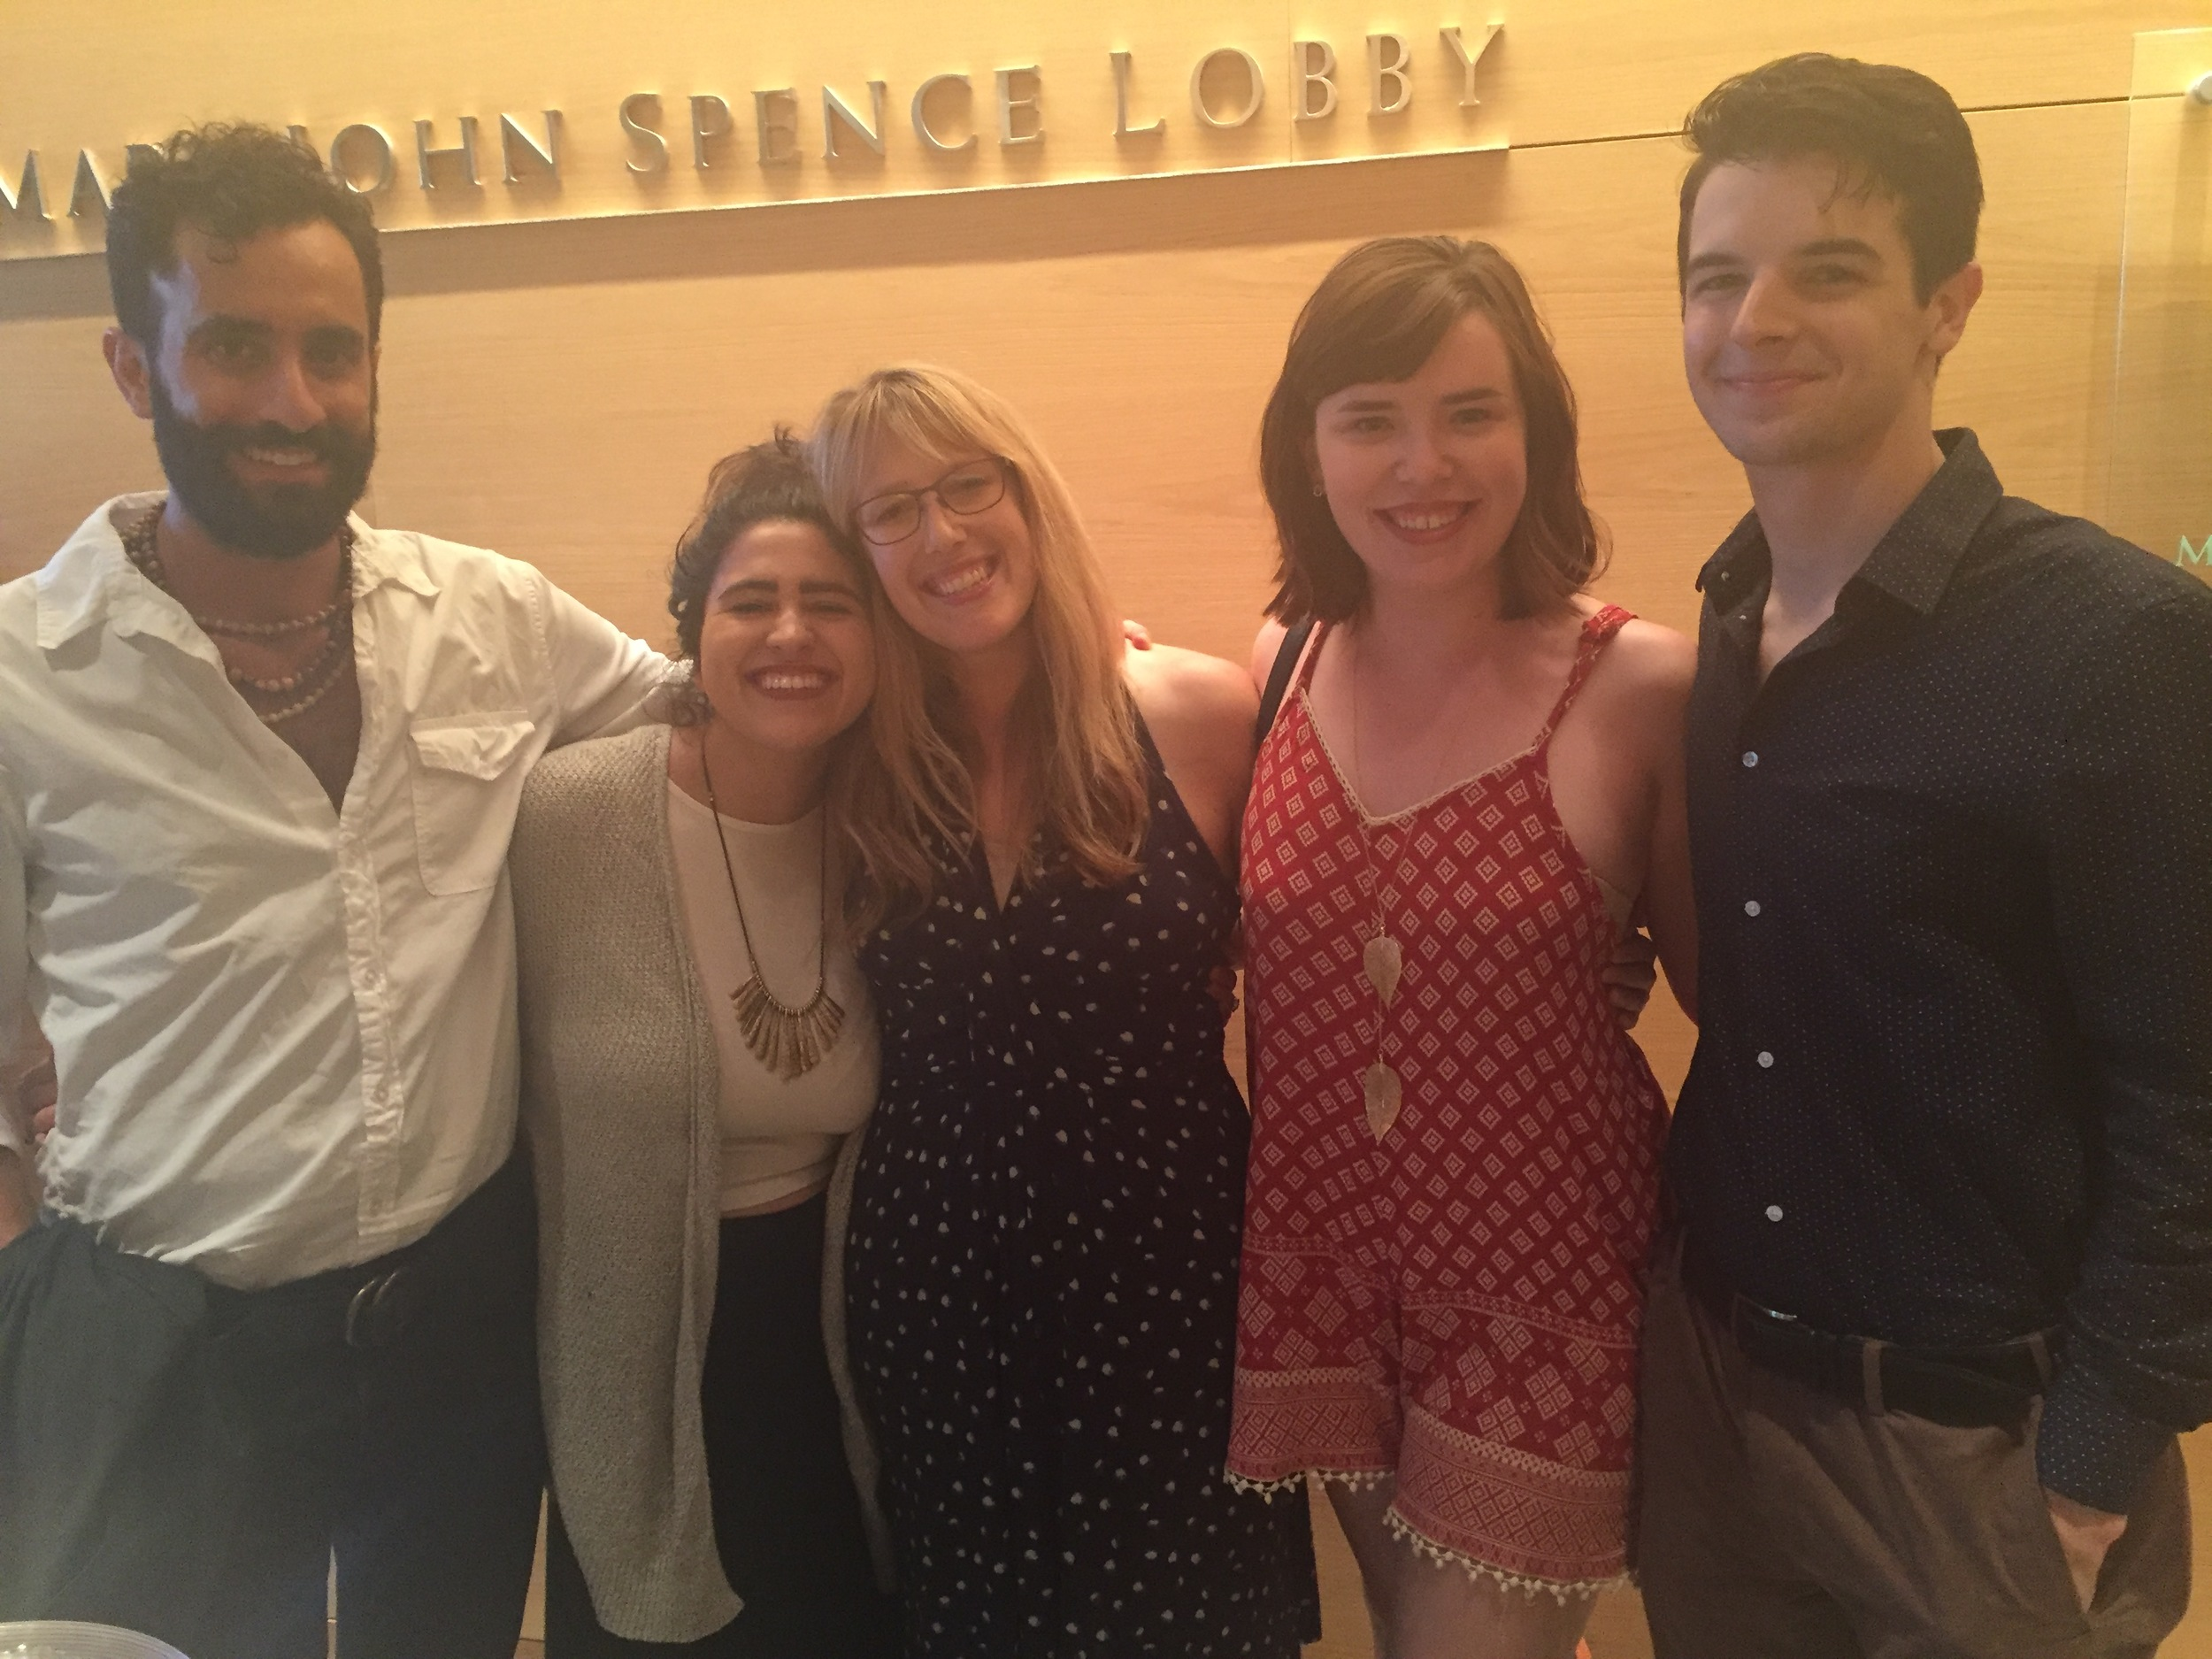 Joanna with the cast of the UTNT production of The Orange Garden at the Keene Prize awards ceremony. From l to r: Adam Foldes, Kat Lozano, Natalie Patton, Luke Stodghill.